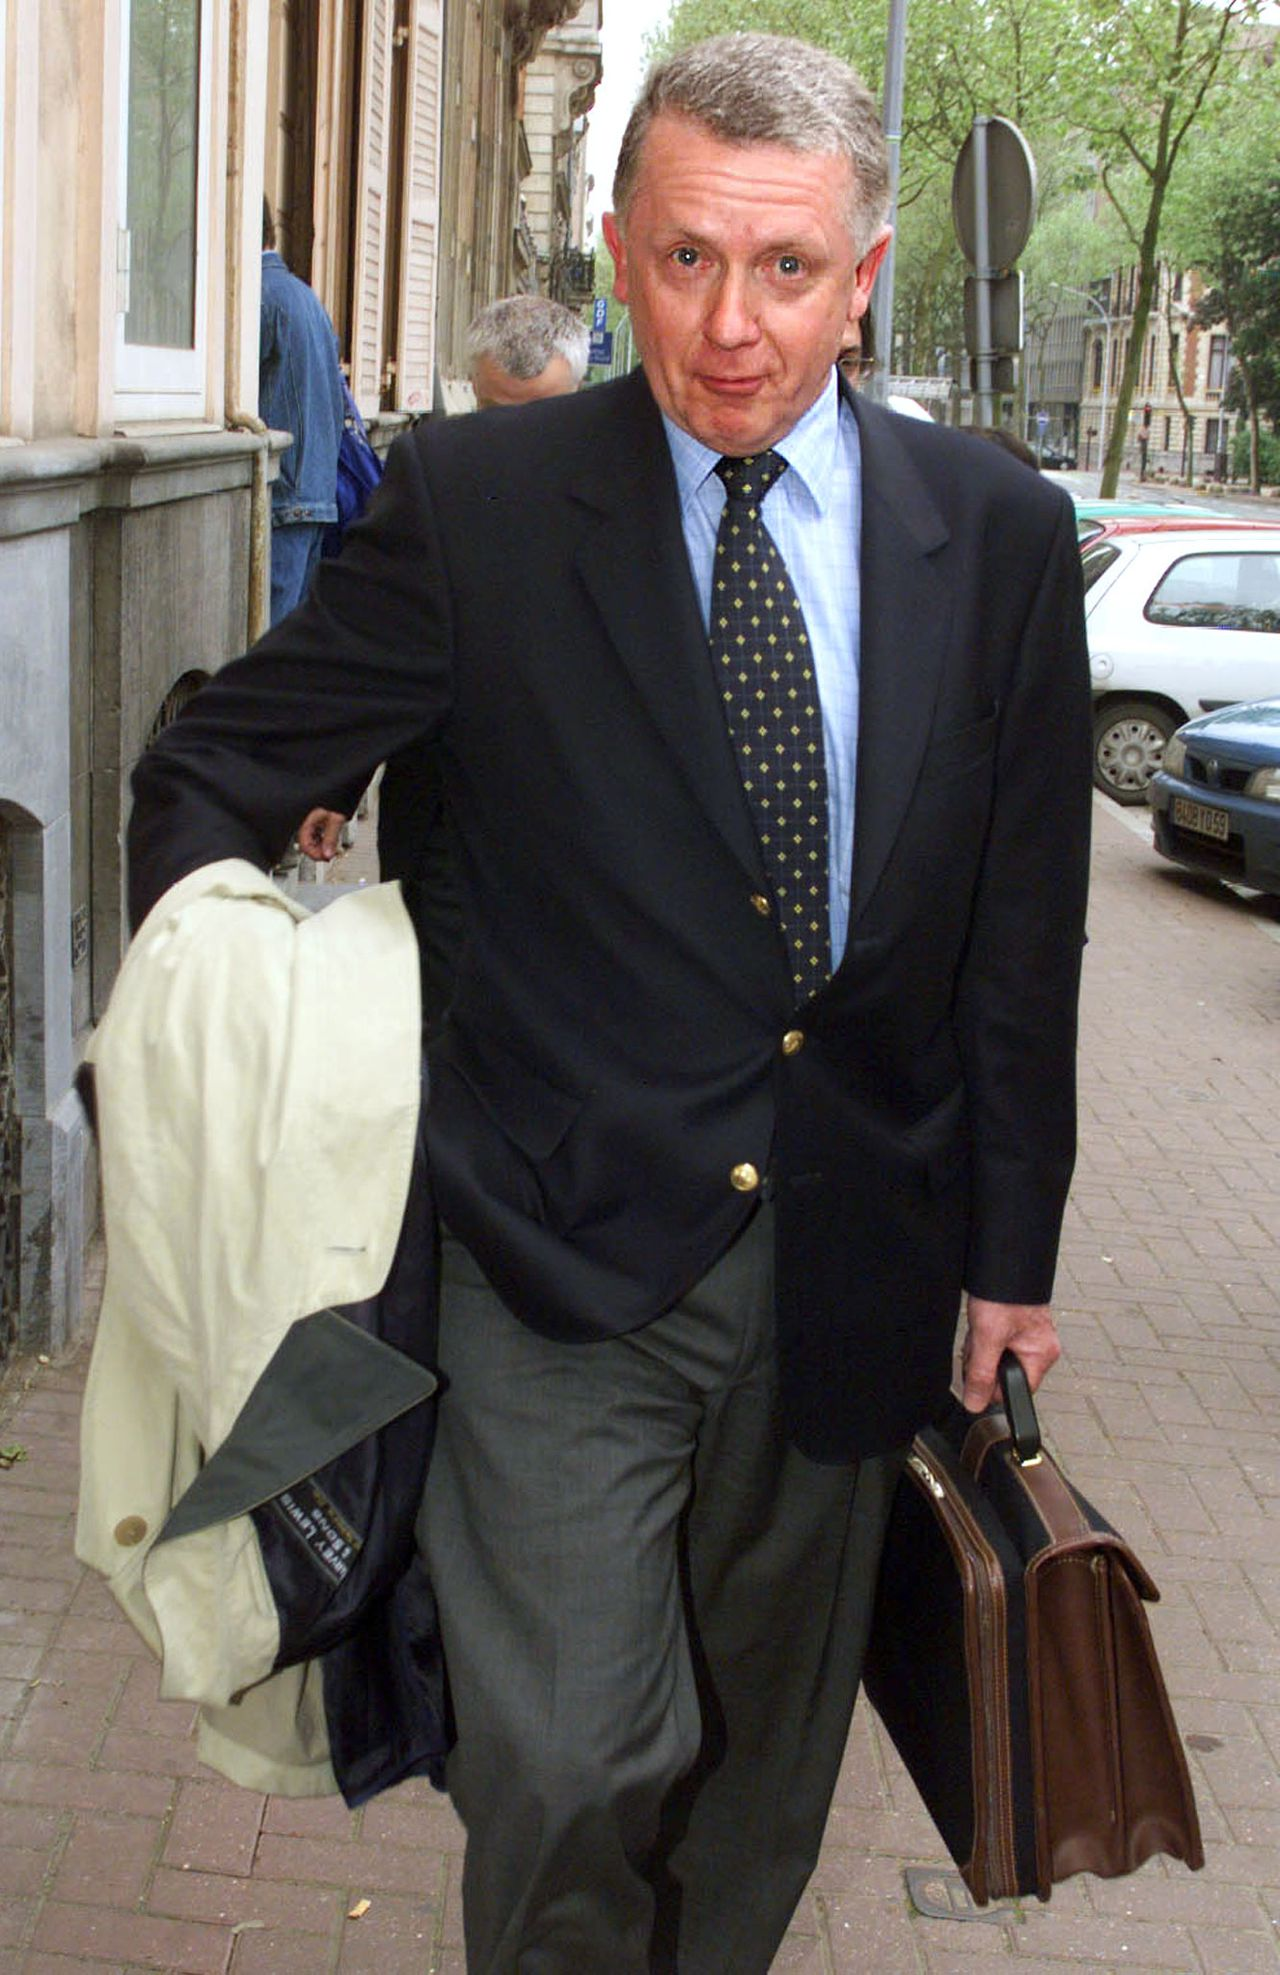 Hein Verbruggen in 1999 in Lille, voor een politieverhoor in de dopingzaak-Festina. Foto Reuters Hein Verbruggen president of the International Union of Cyclists, arrives at the detective division of the Lille police headquarters May 10. Verbruggen will be questioned by detectives in a renewed enquiry following the 1998 Tour de France cycle race doping scandal. JNA/